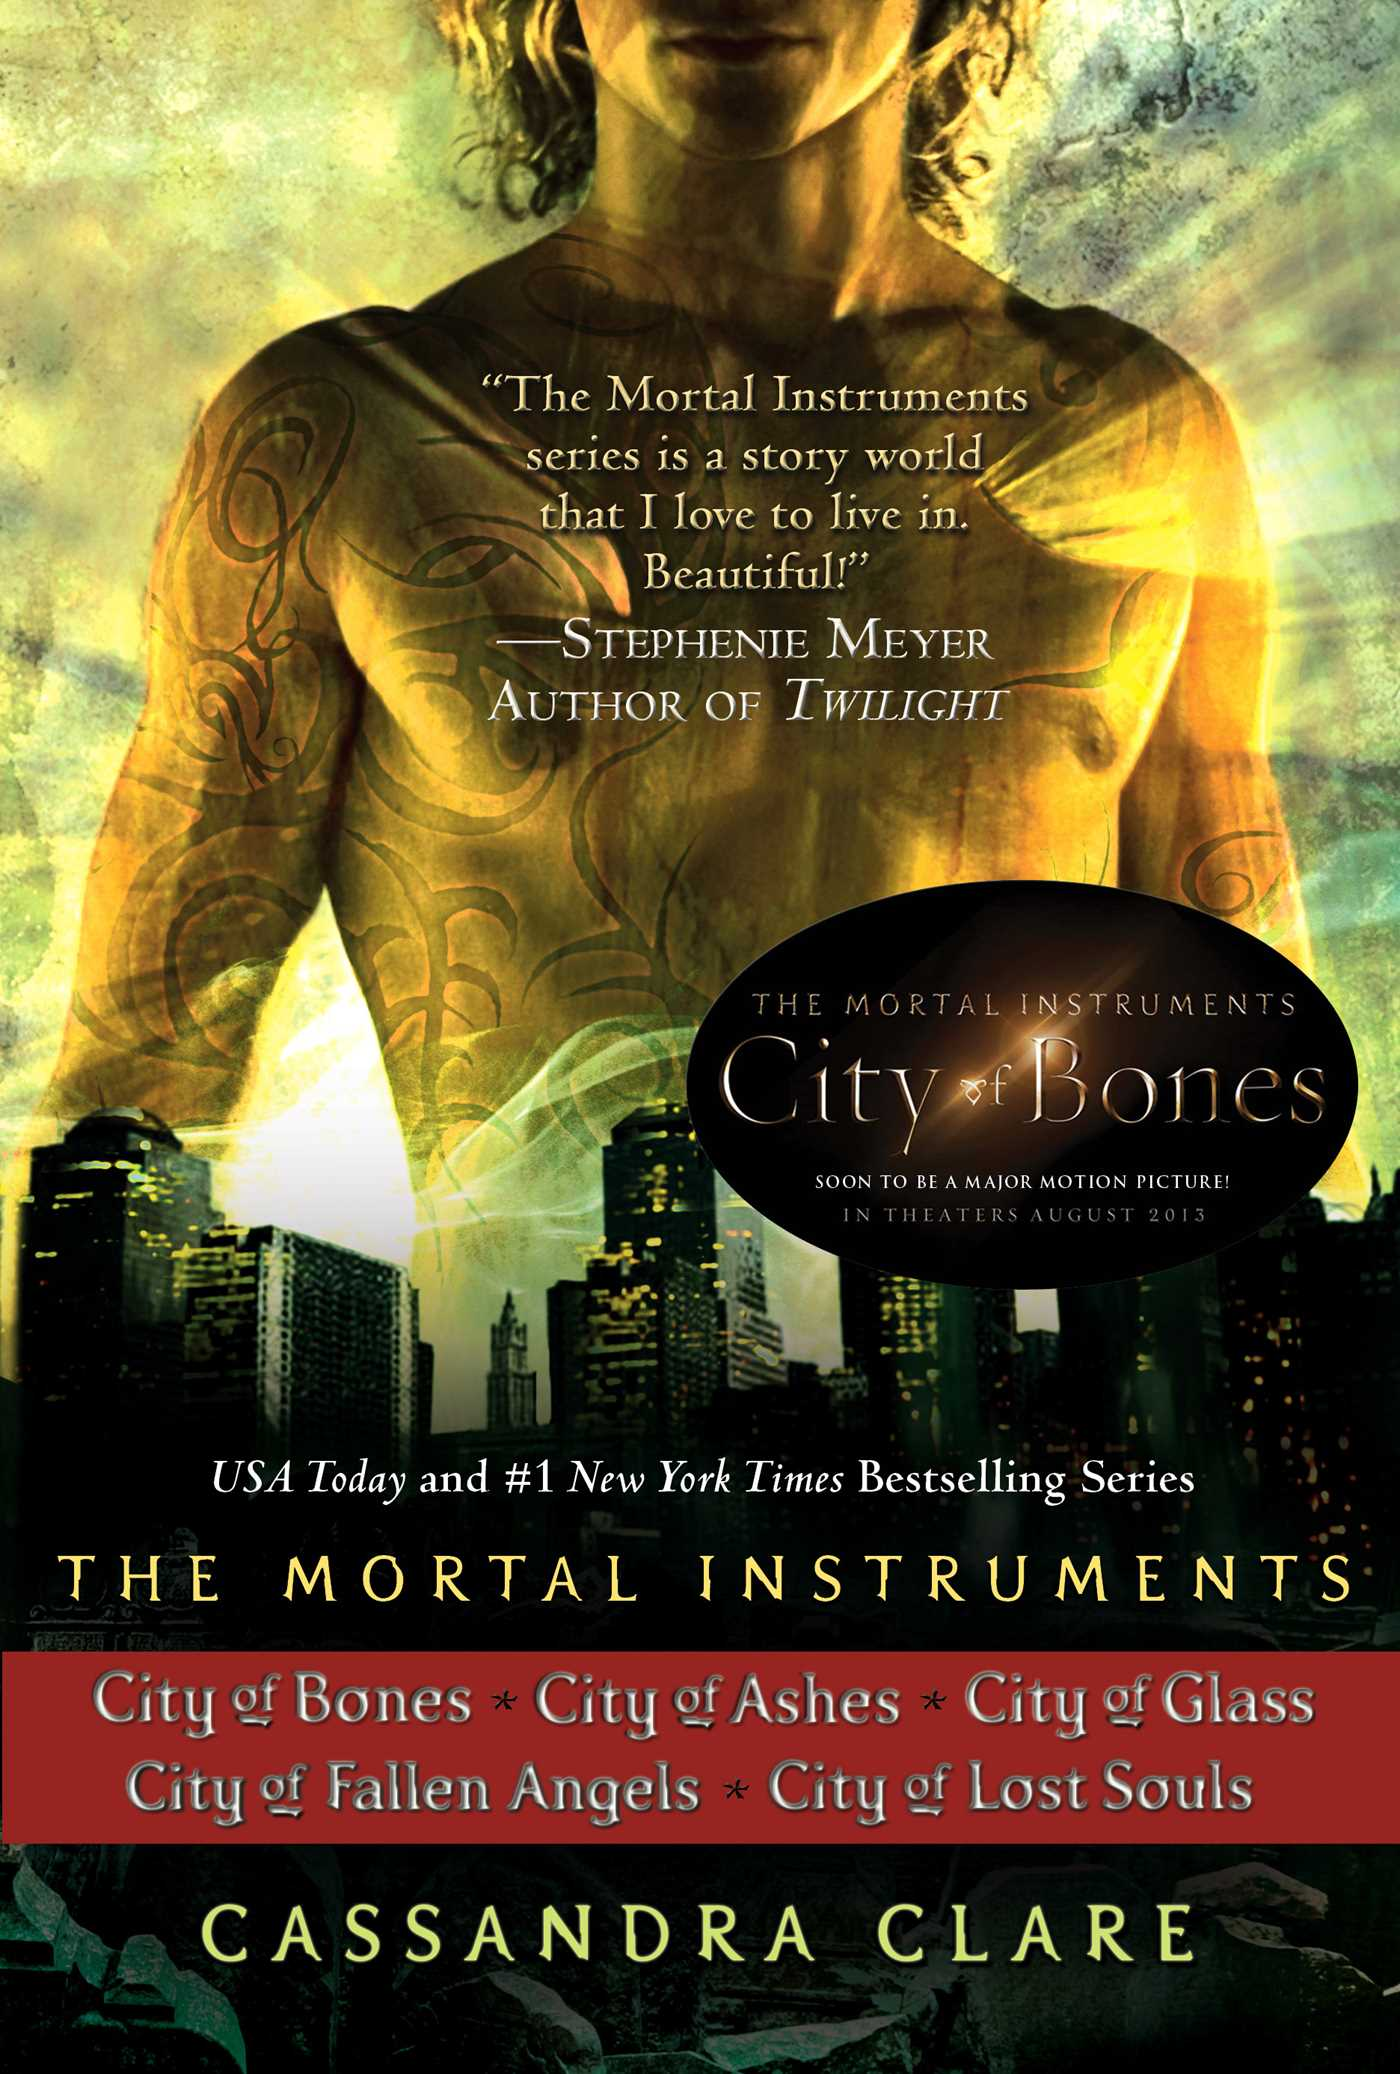 Cassandra-clare-the-mortal-instruments-series-(5-9781442481015_hr